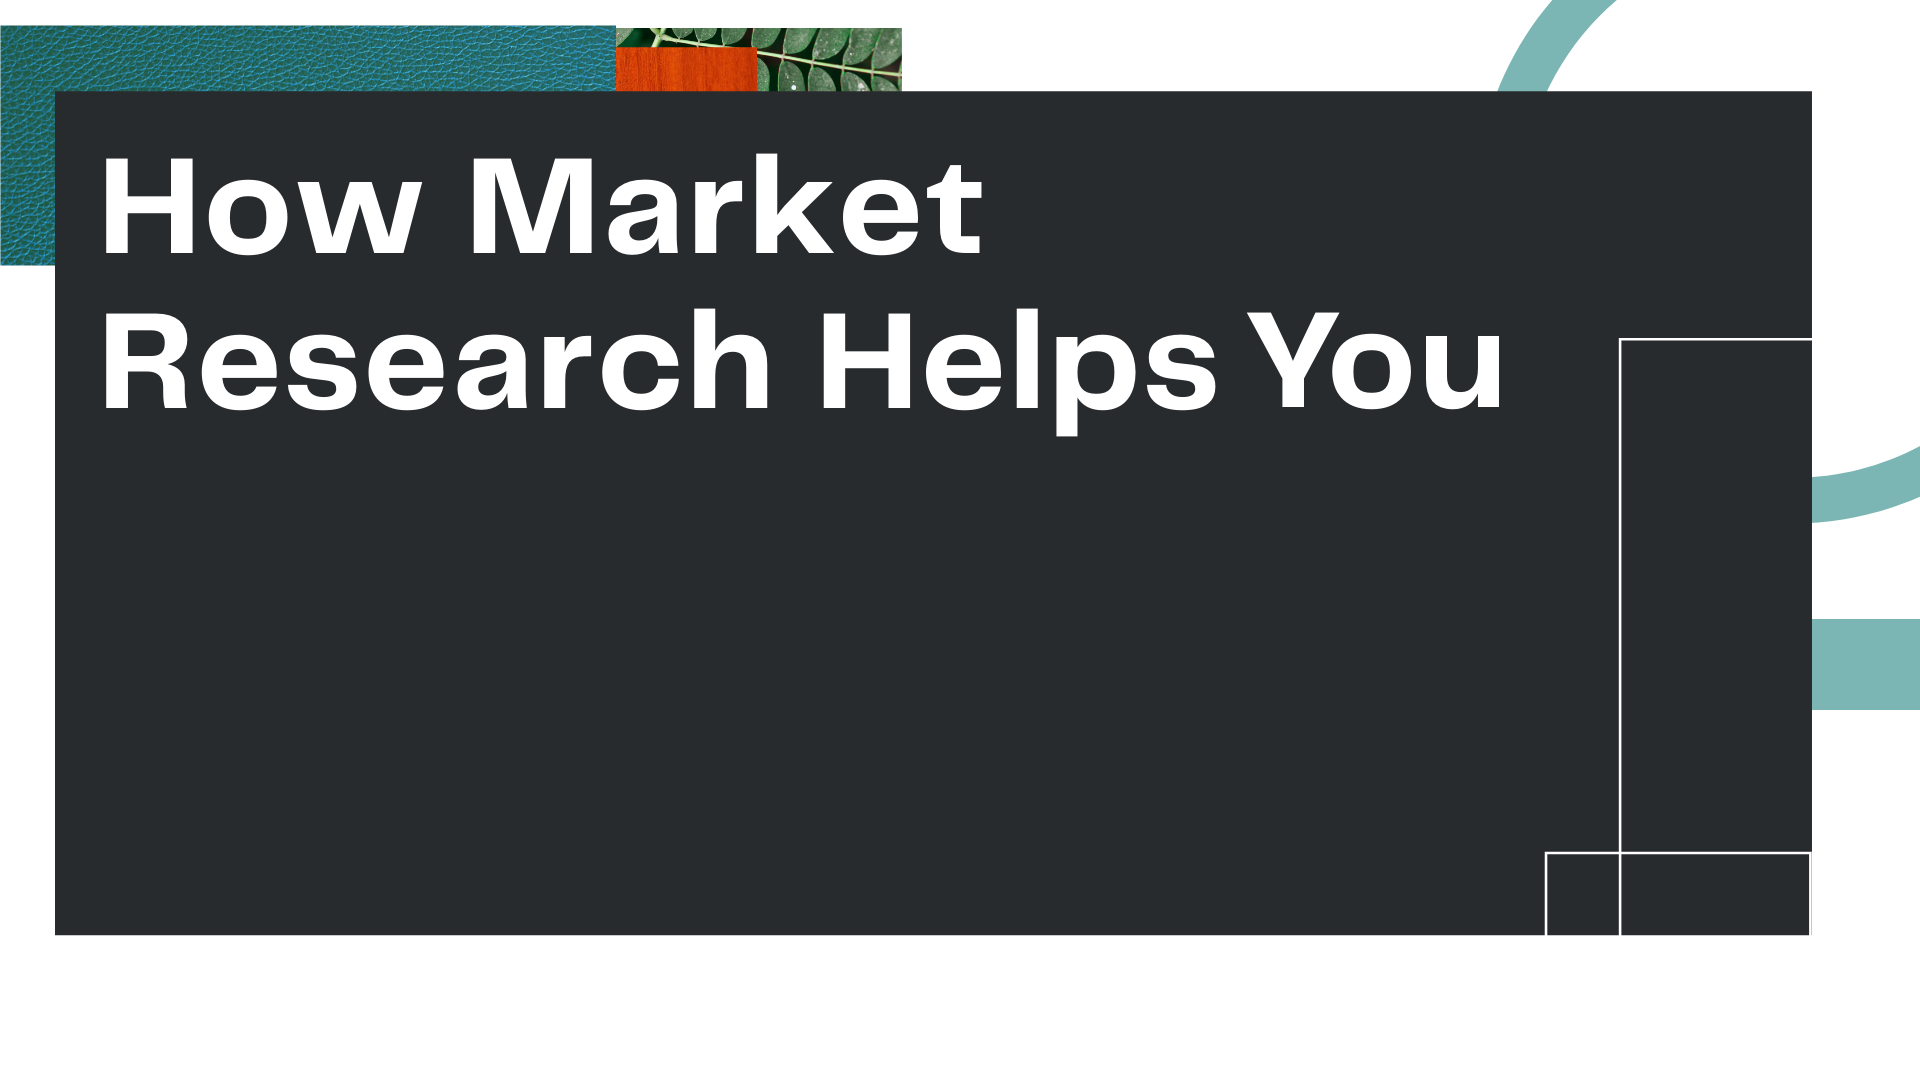 Image of Owl Street Studio's What is Market Research episode from Empathy, Marketing, & You